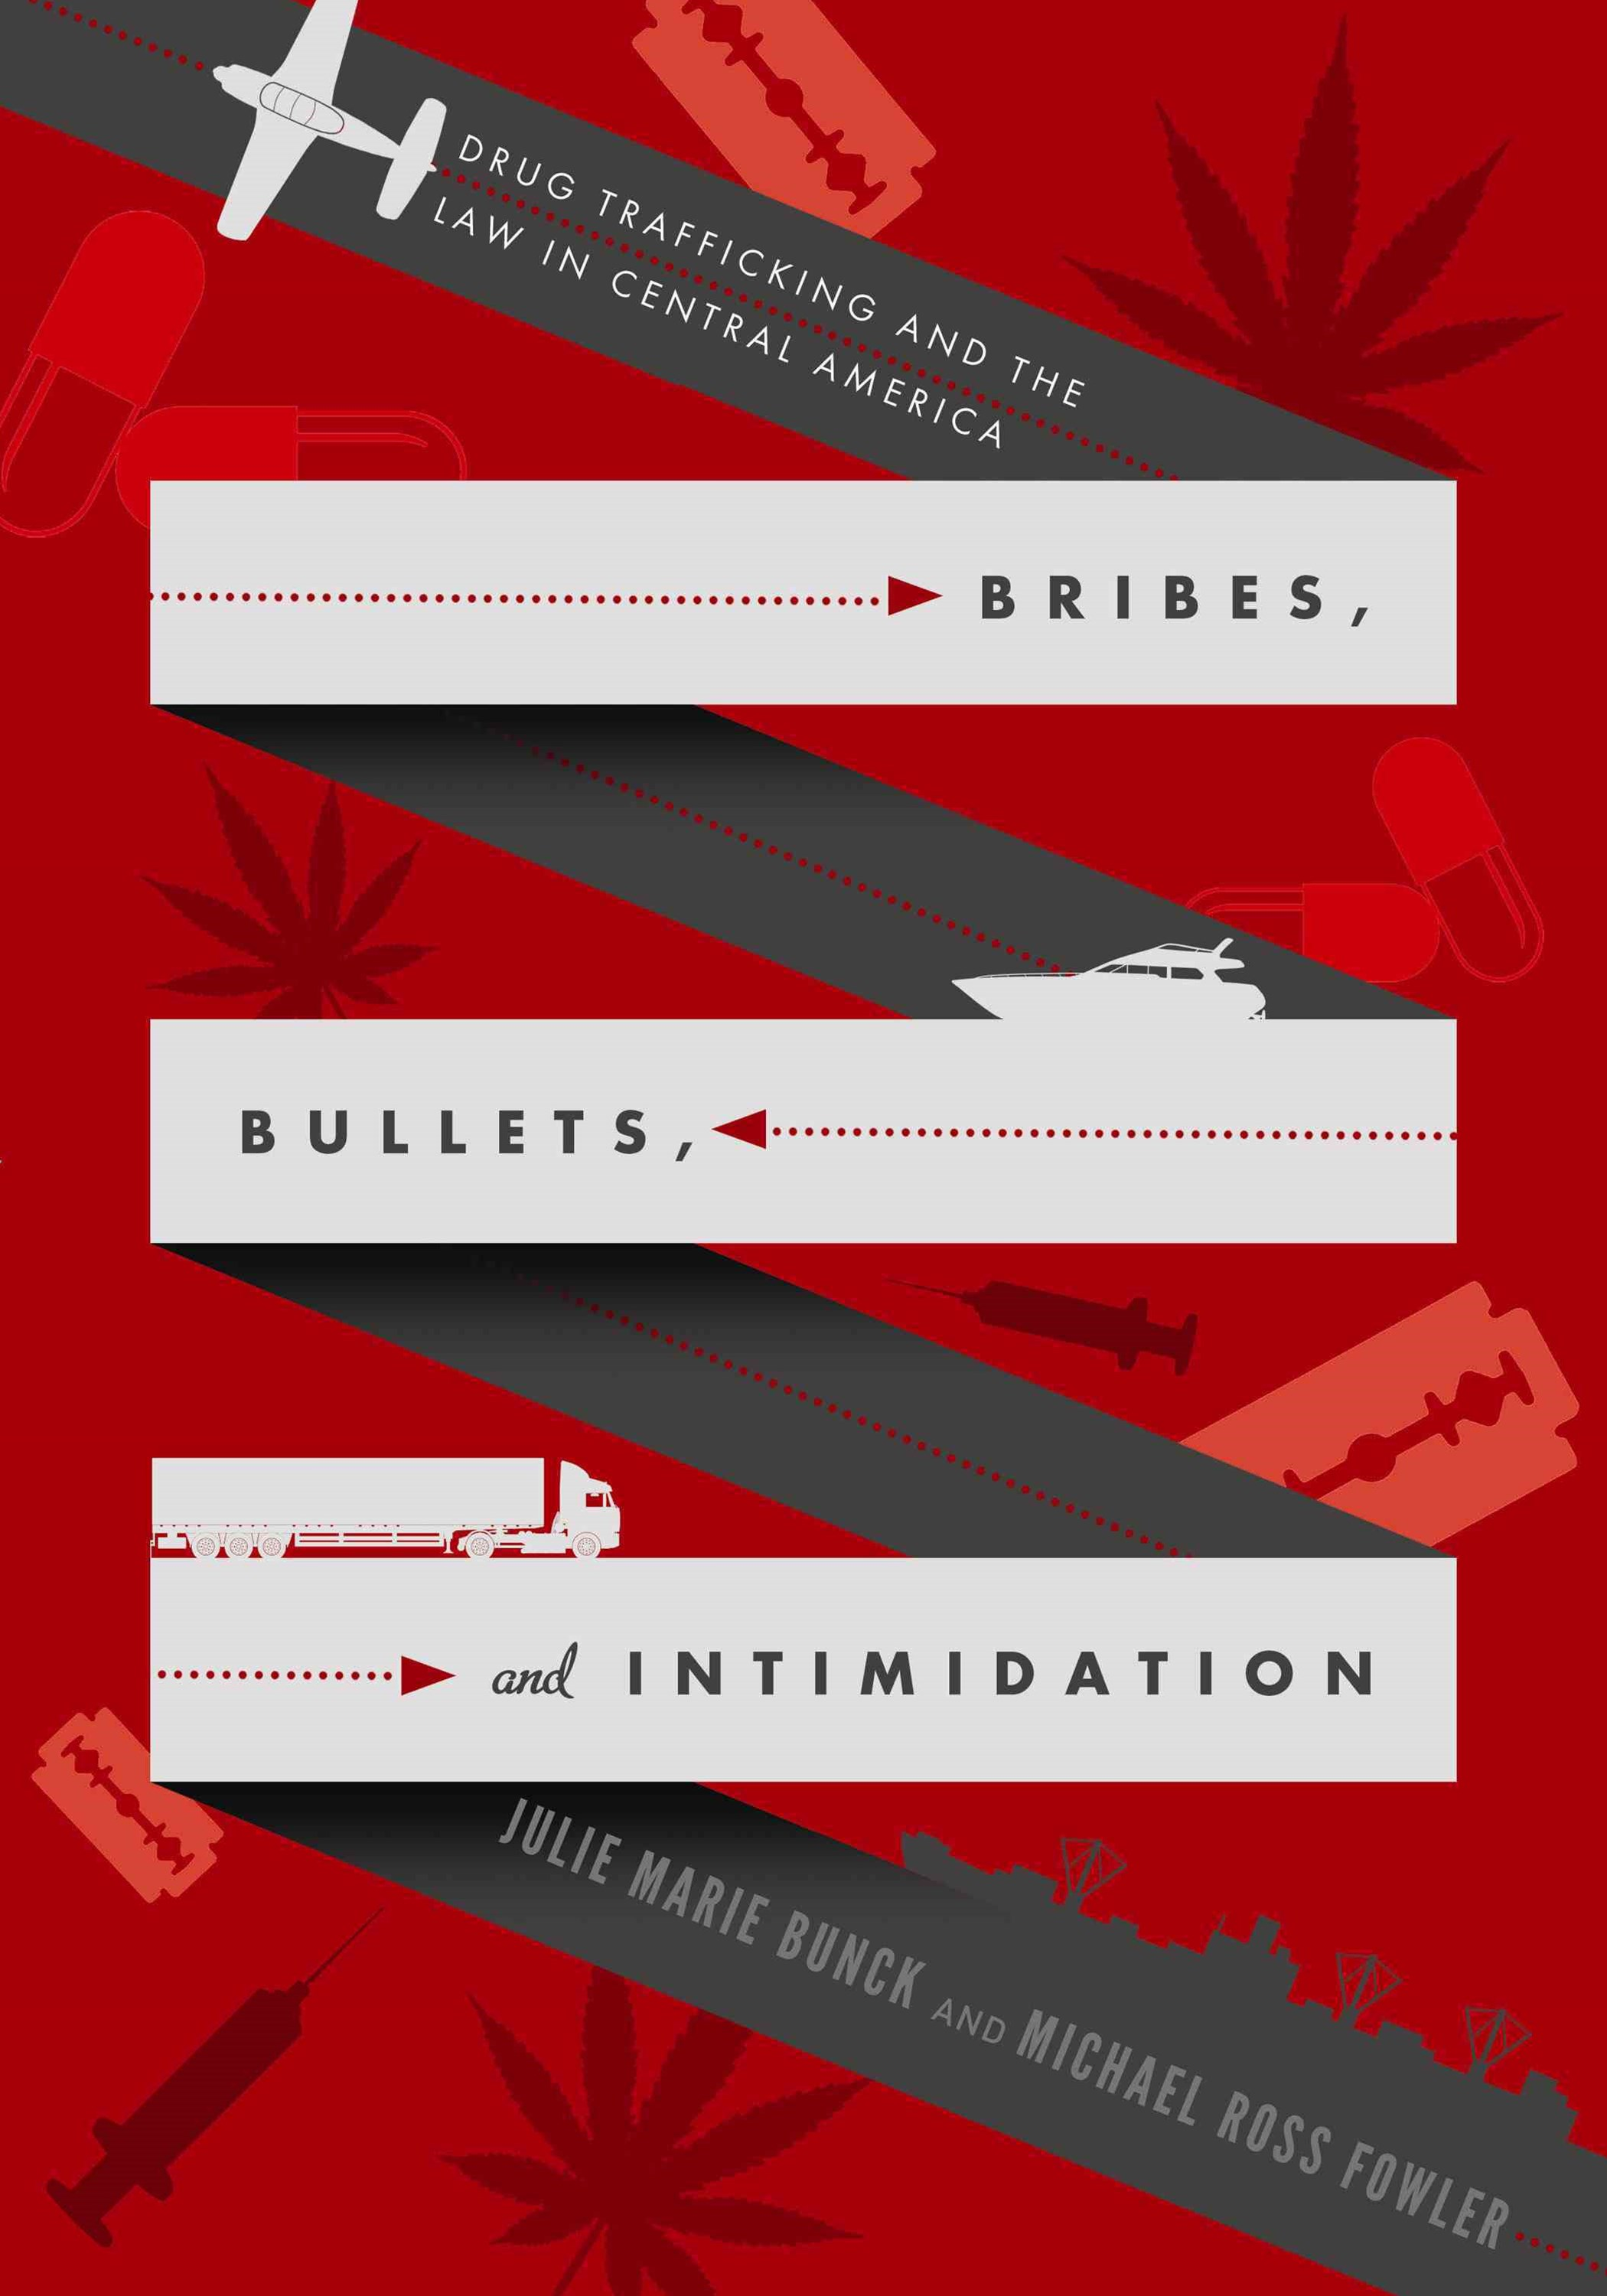 Bribes, Bullets, and Intimidation